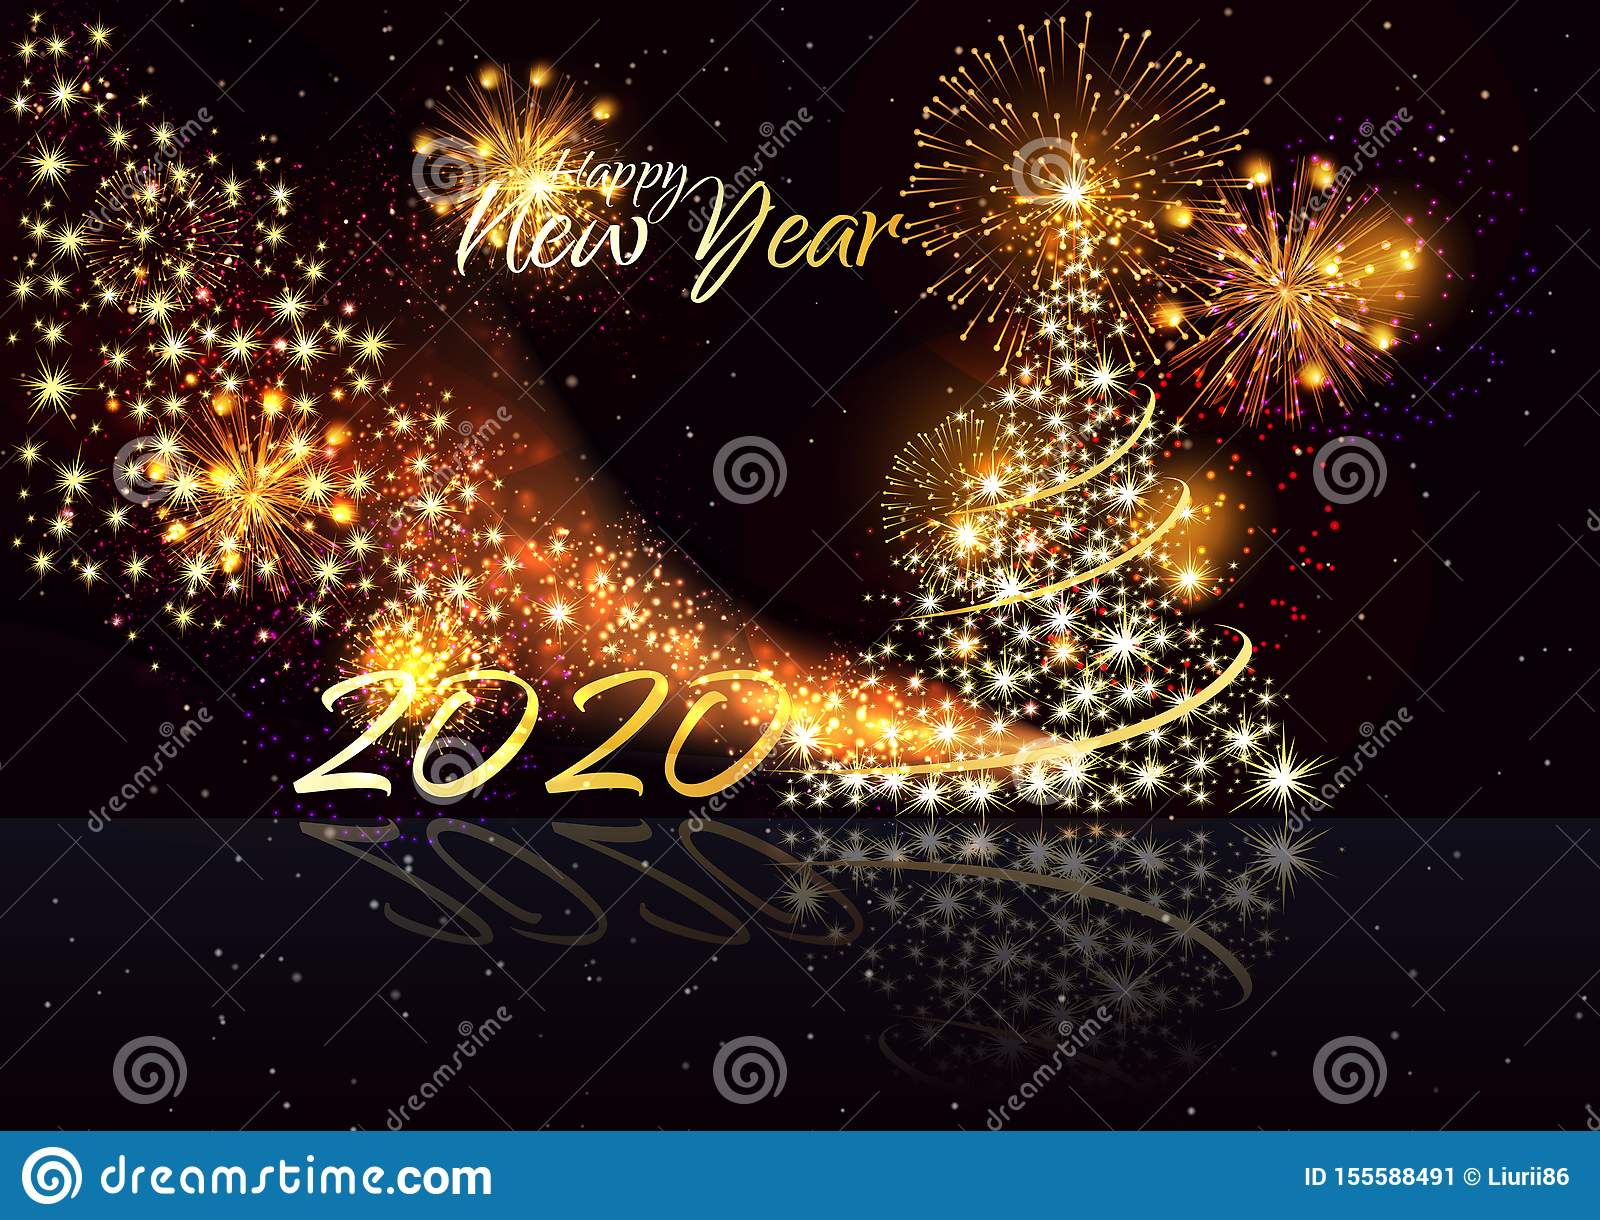 merry christmas and happy new year happy new year 2020 marry christmas background with gold 2020 vector stock illustration illustration of collection firework 155588491 https www dreamstime com merry christmas happy new year marry background gold vector illustration image155588491